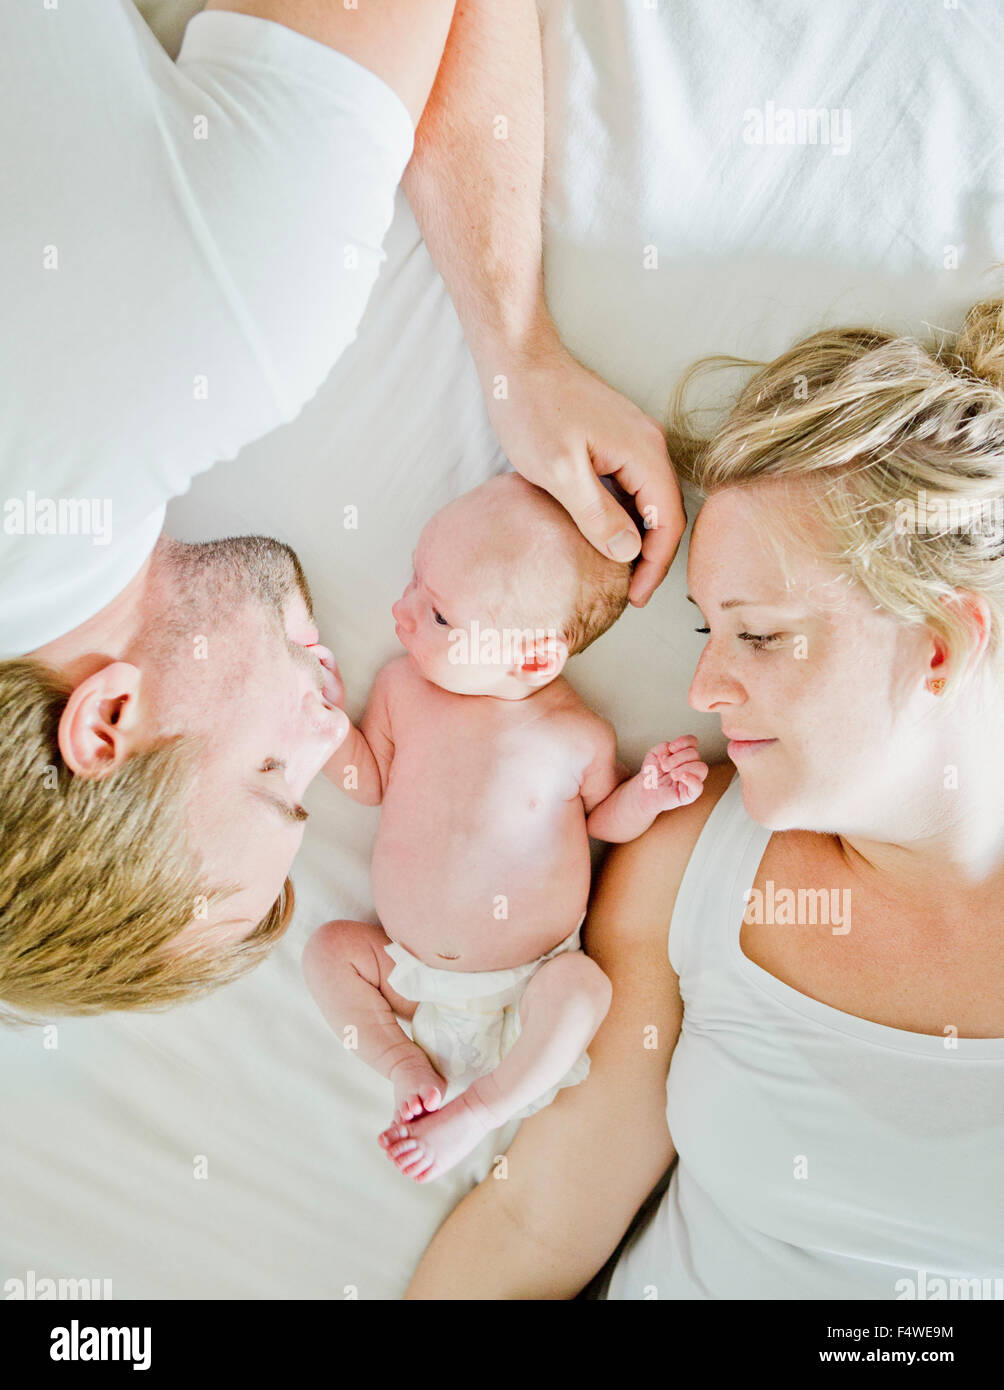 Baby boy (0-1 months) with his parents on bed - Stock Image